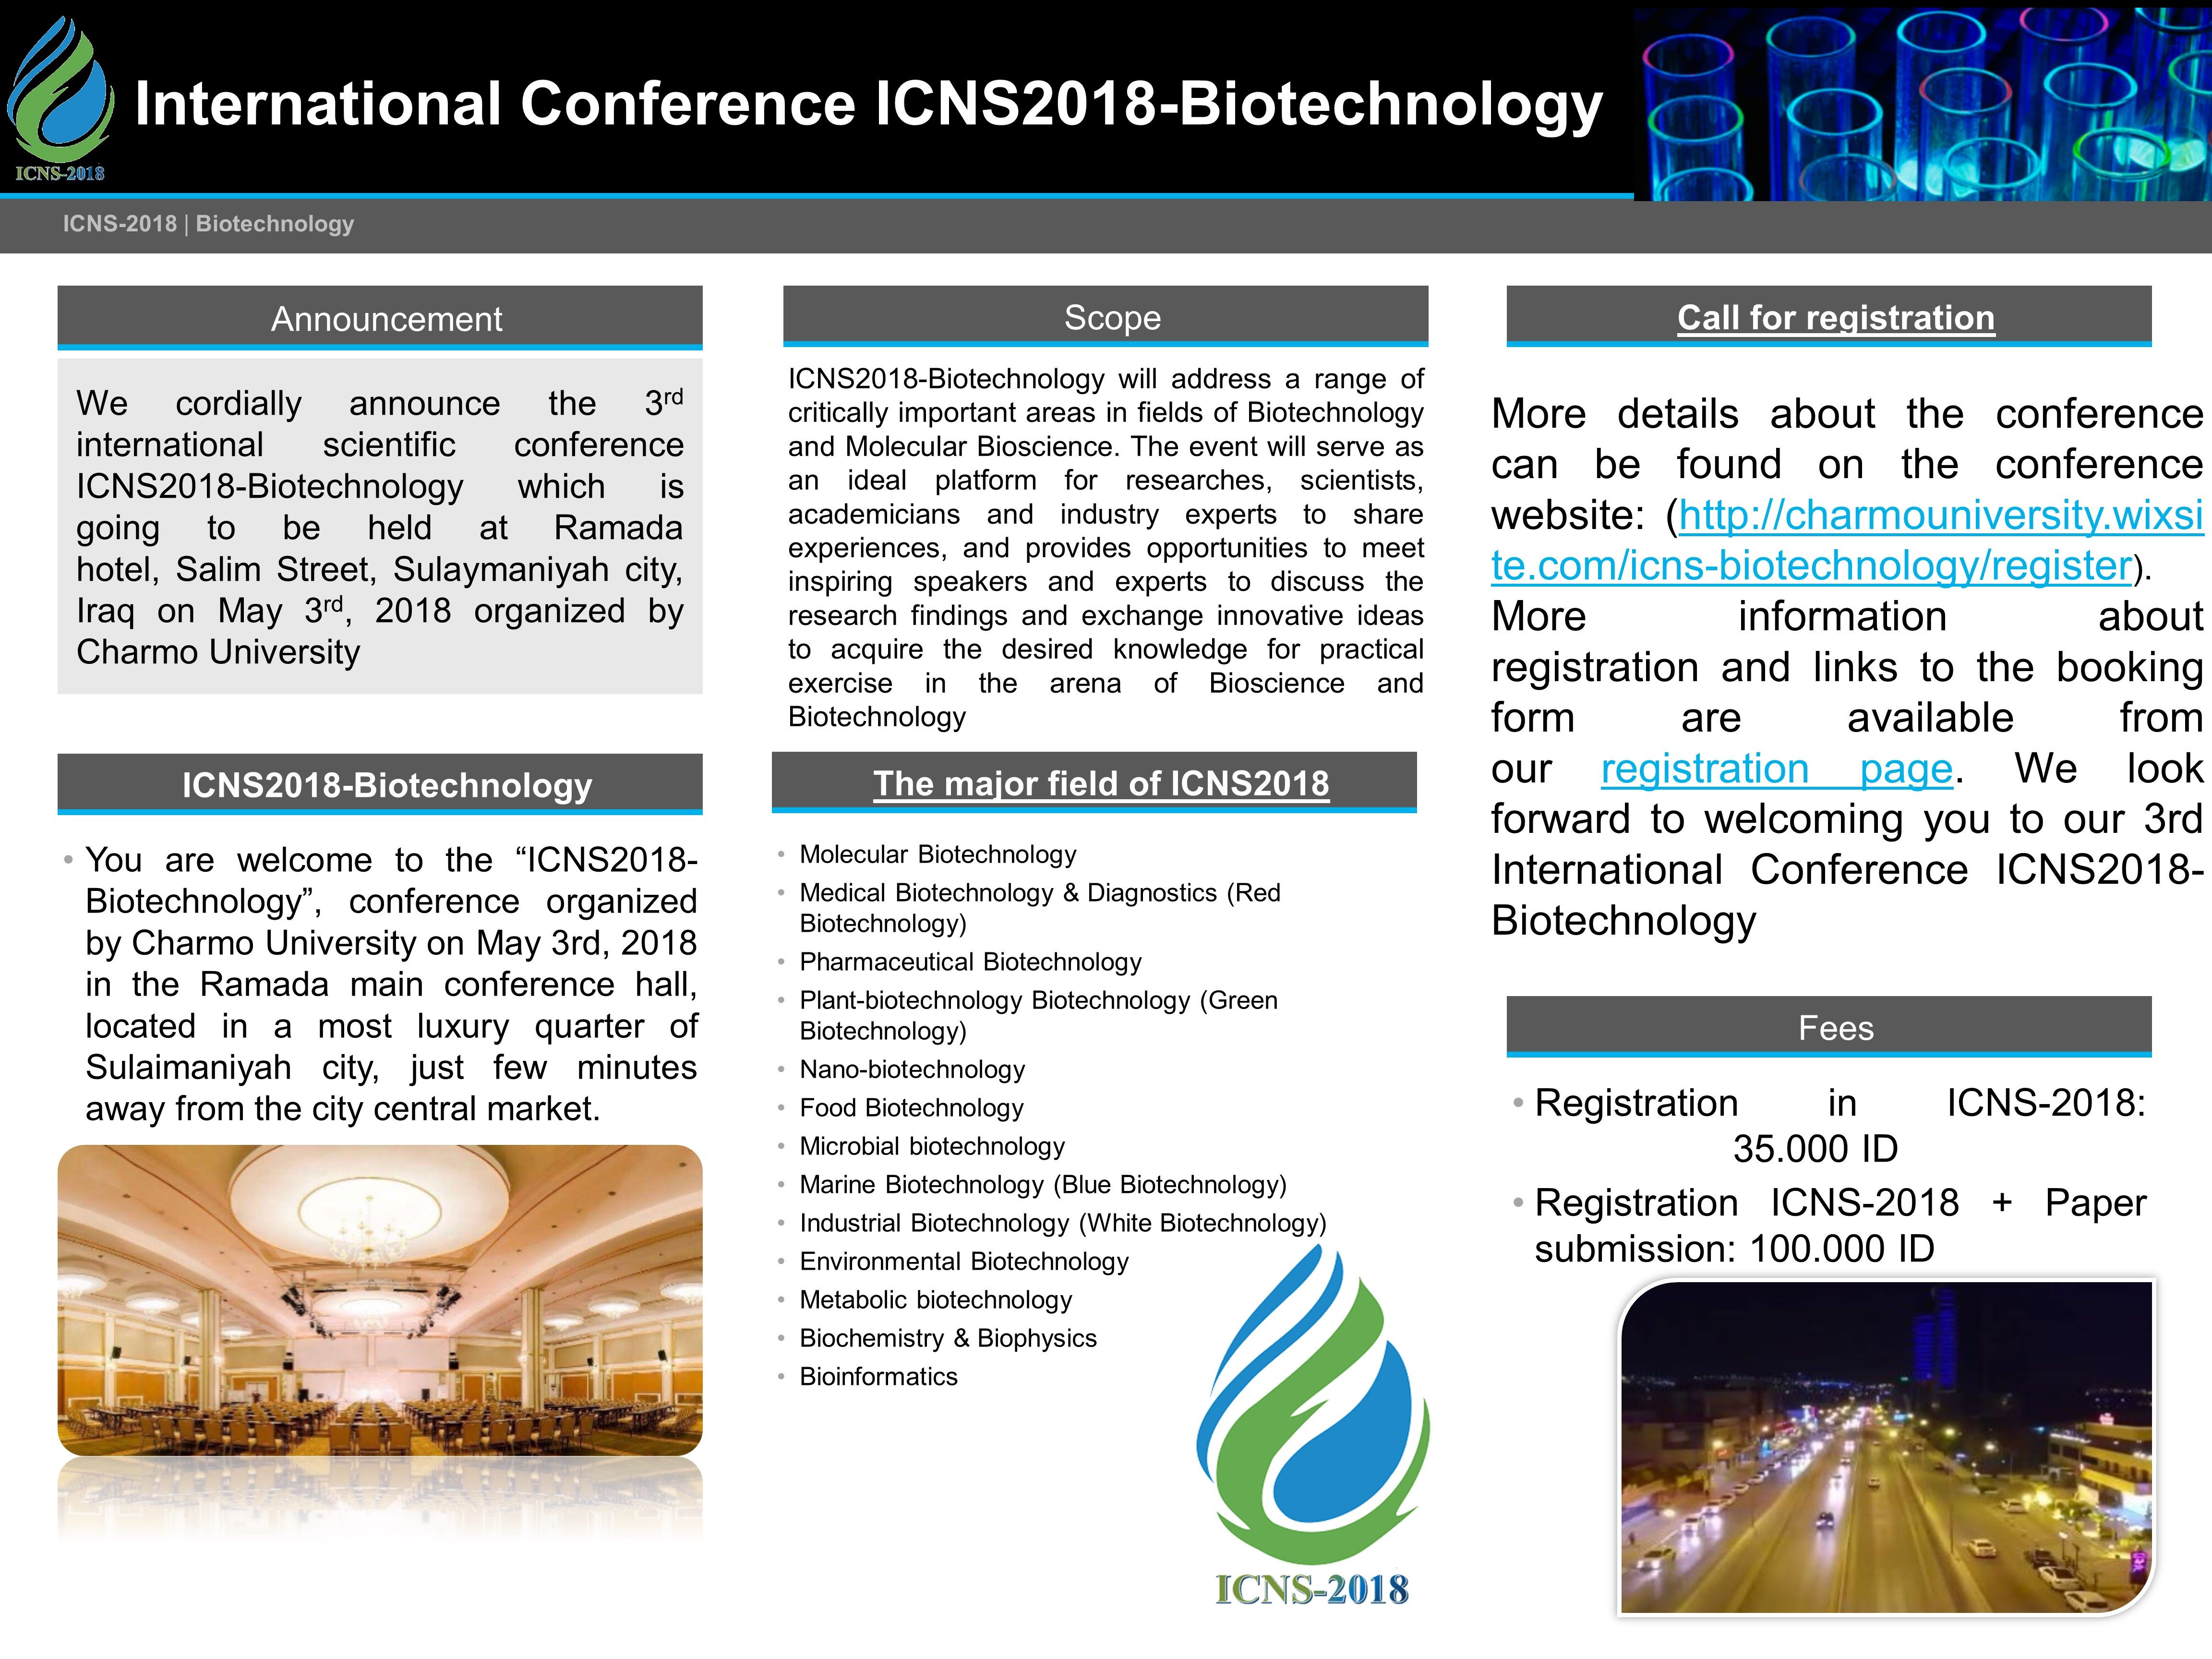 http://charmouniversity.wixsite.com/icns-biotechnology/register